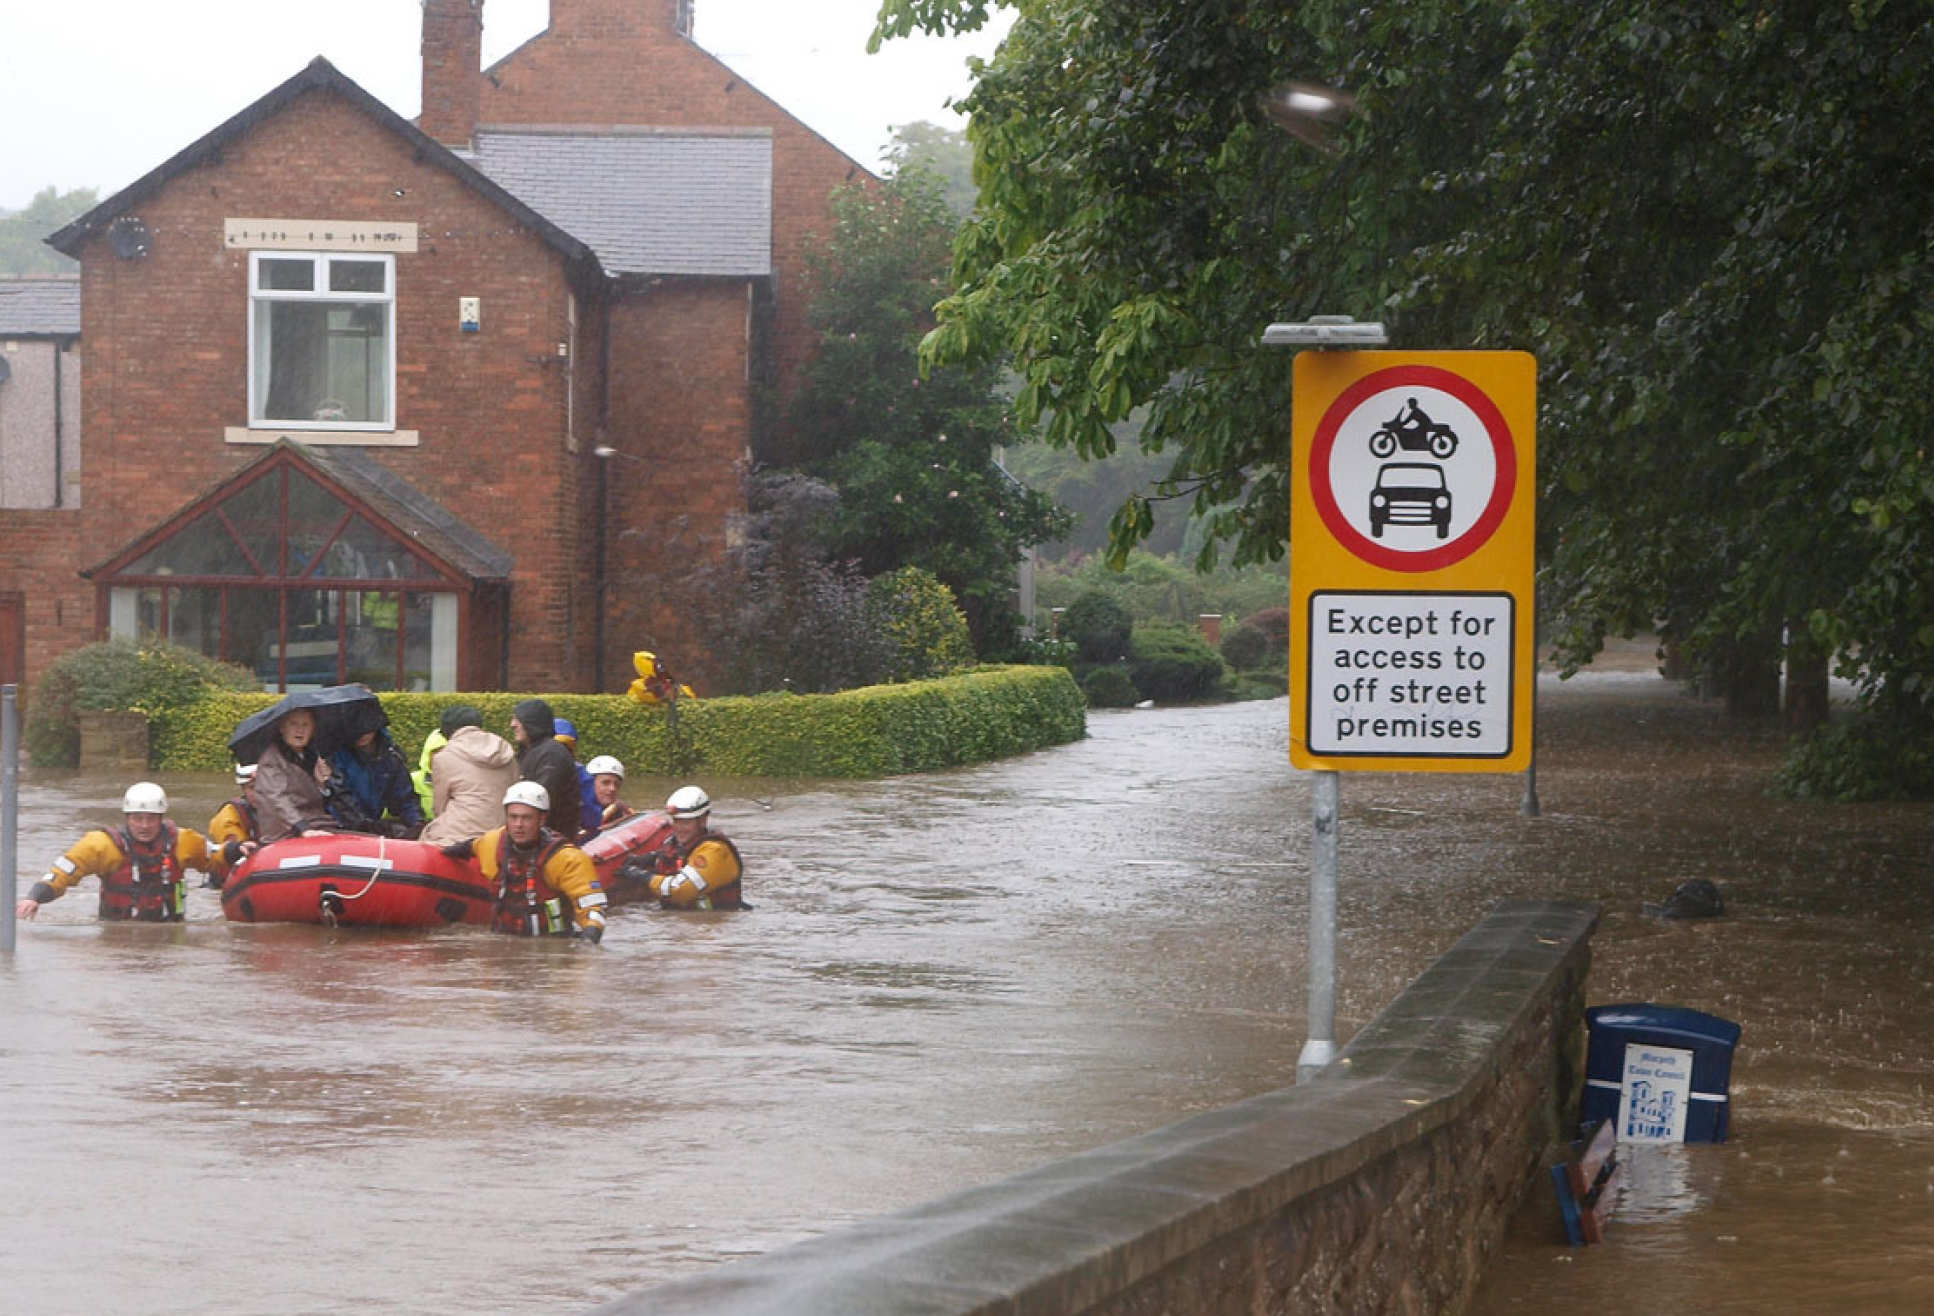 Flooding in an English town